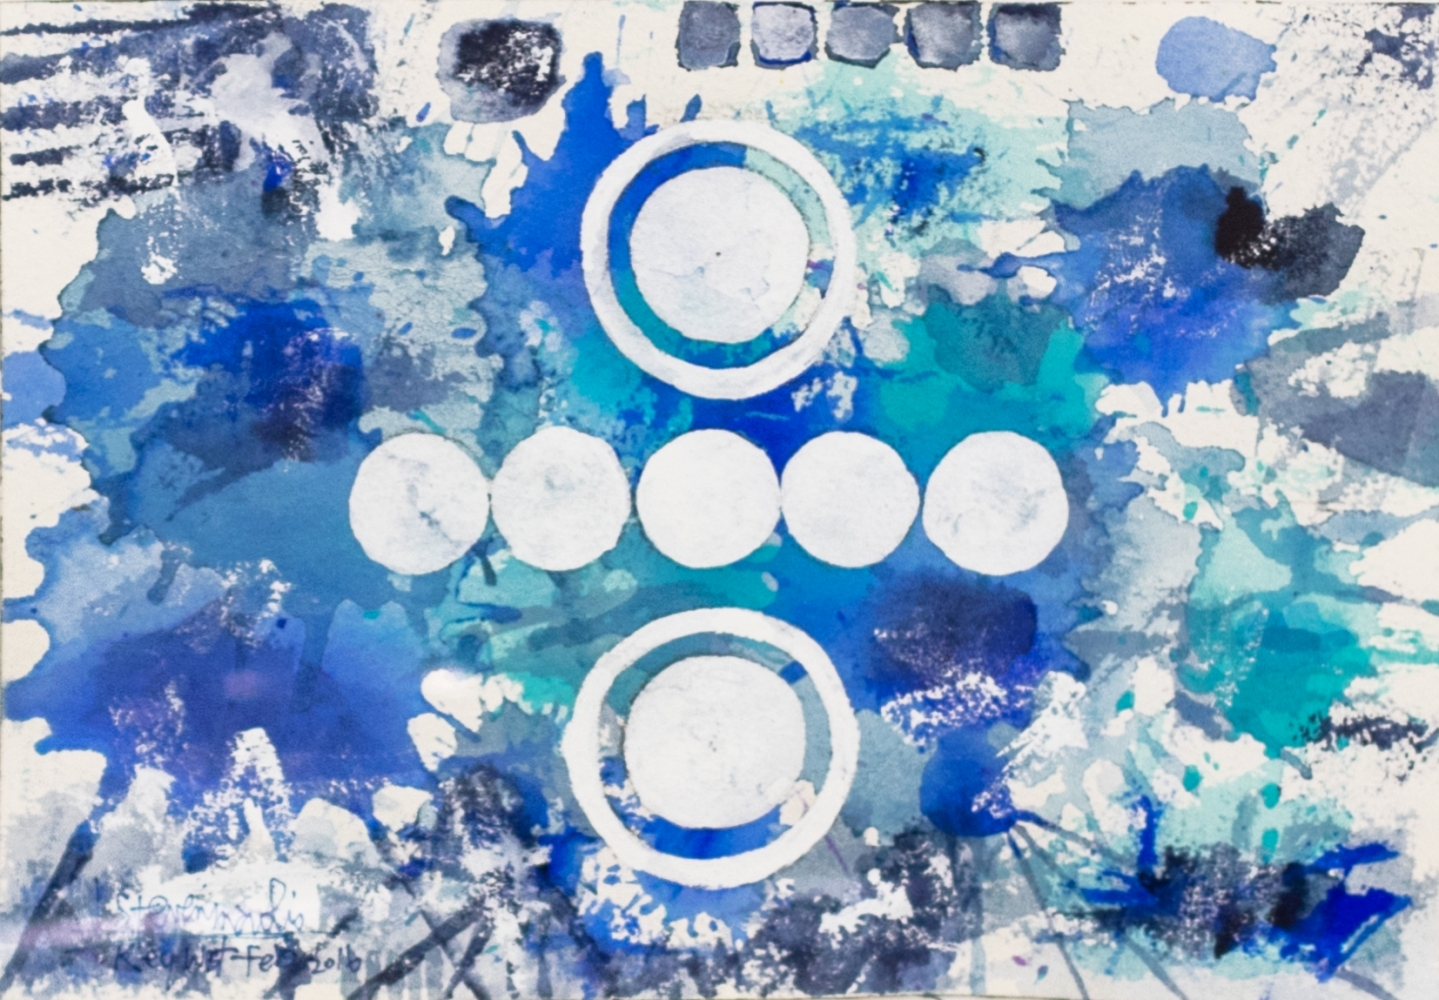 J. Steven Manolis, Key West (Social Consciousness) 07.10.05, 2016, Watercolor painting on paper, 7 x 10 inches, Blue Abstract Art, Splash Art for sale at Manolis Projects Art Gallery, Miami, Fl